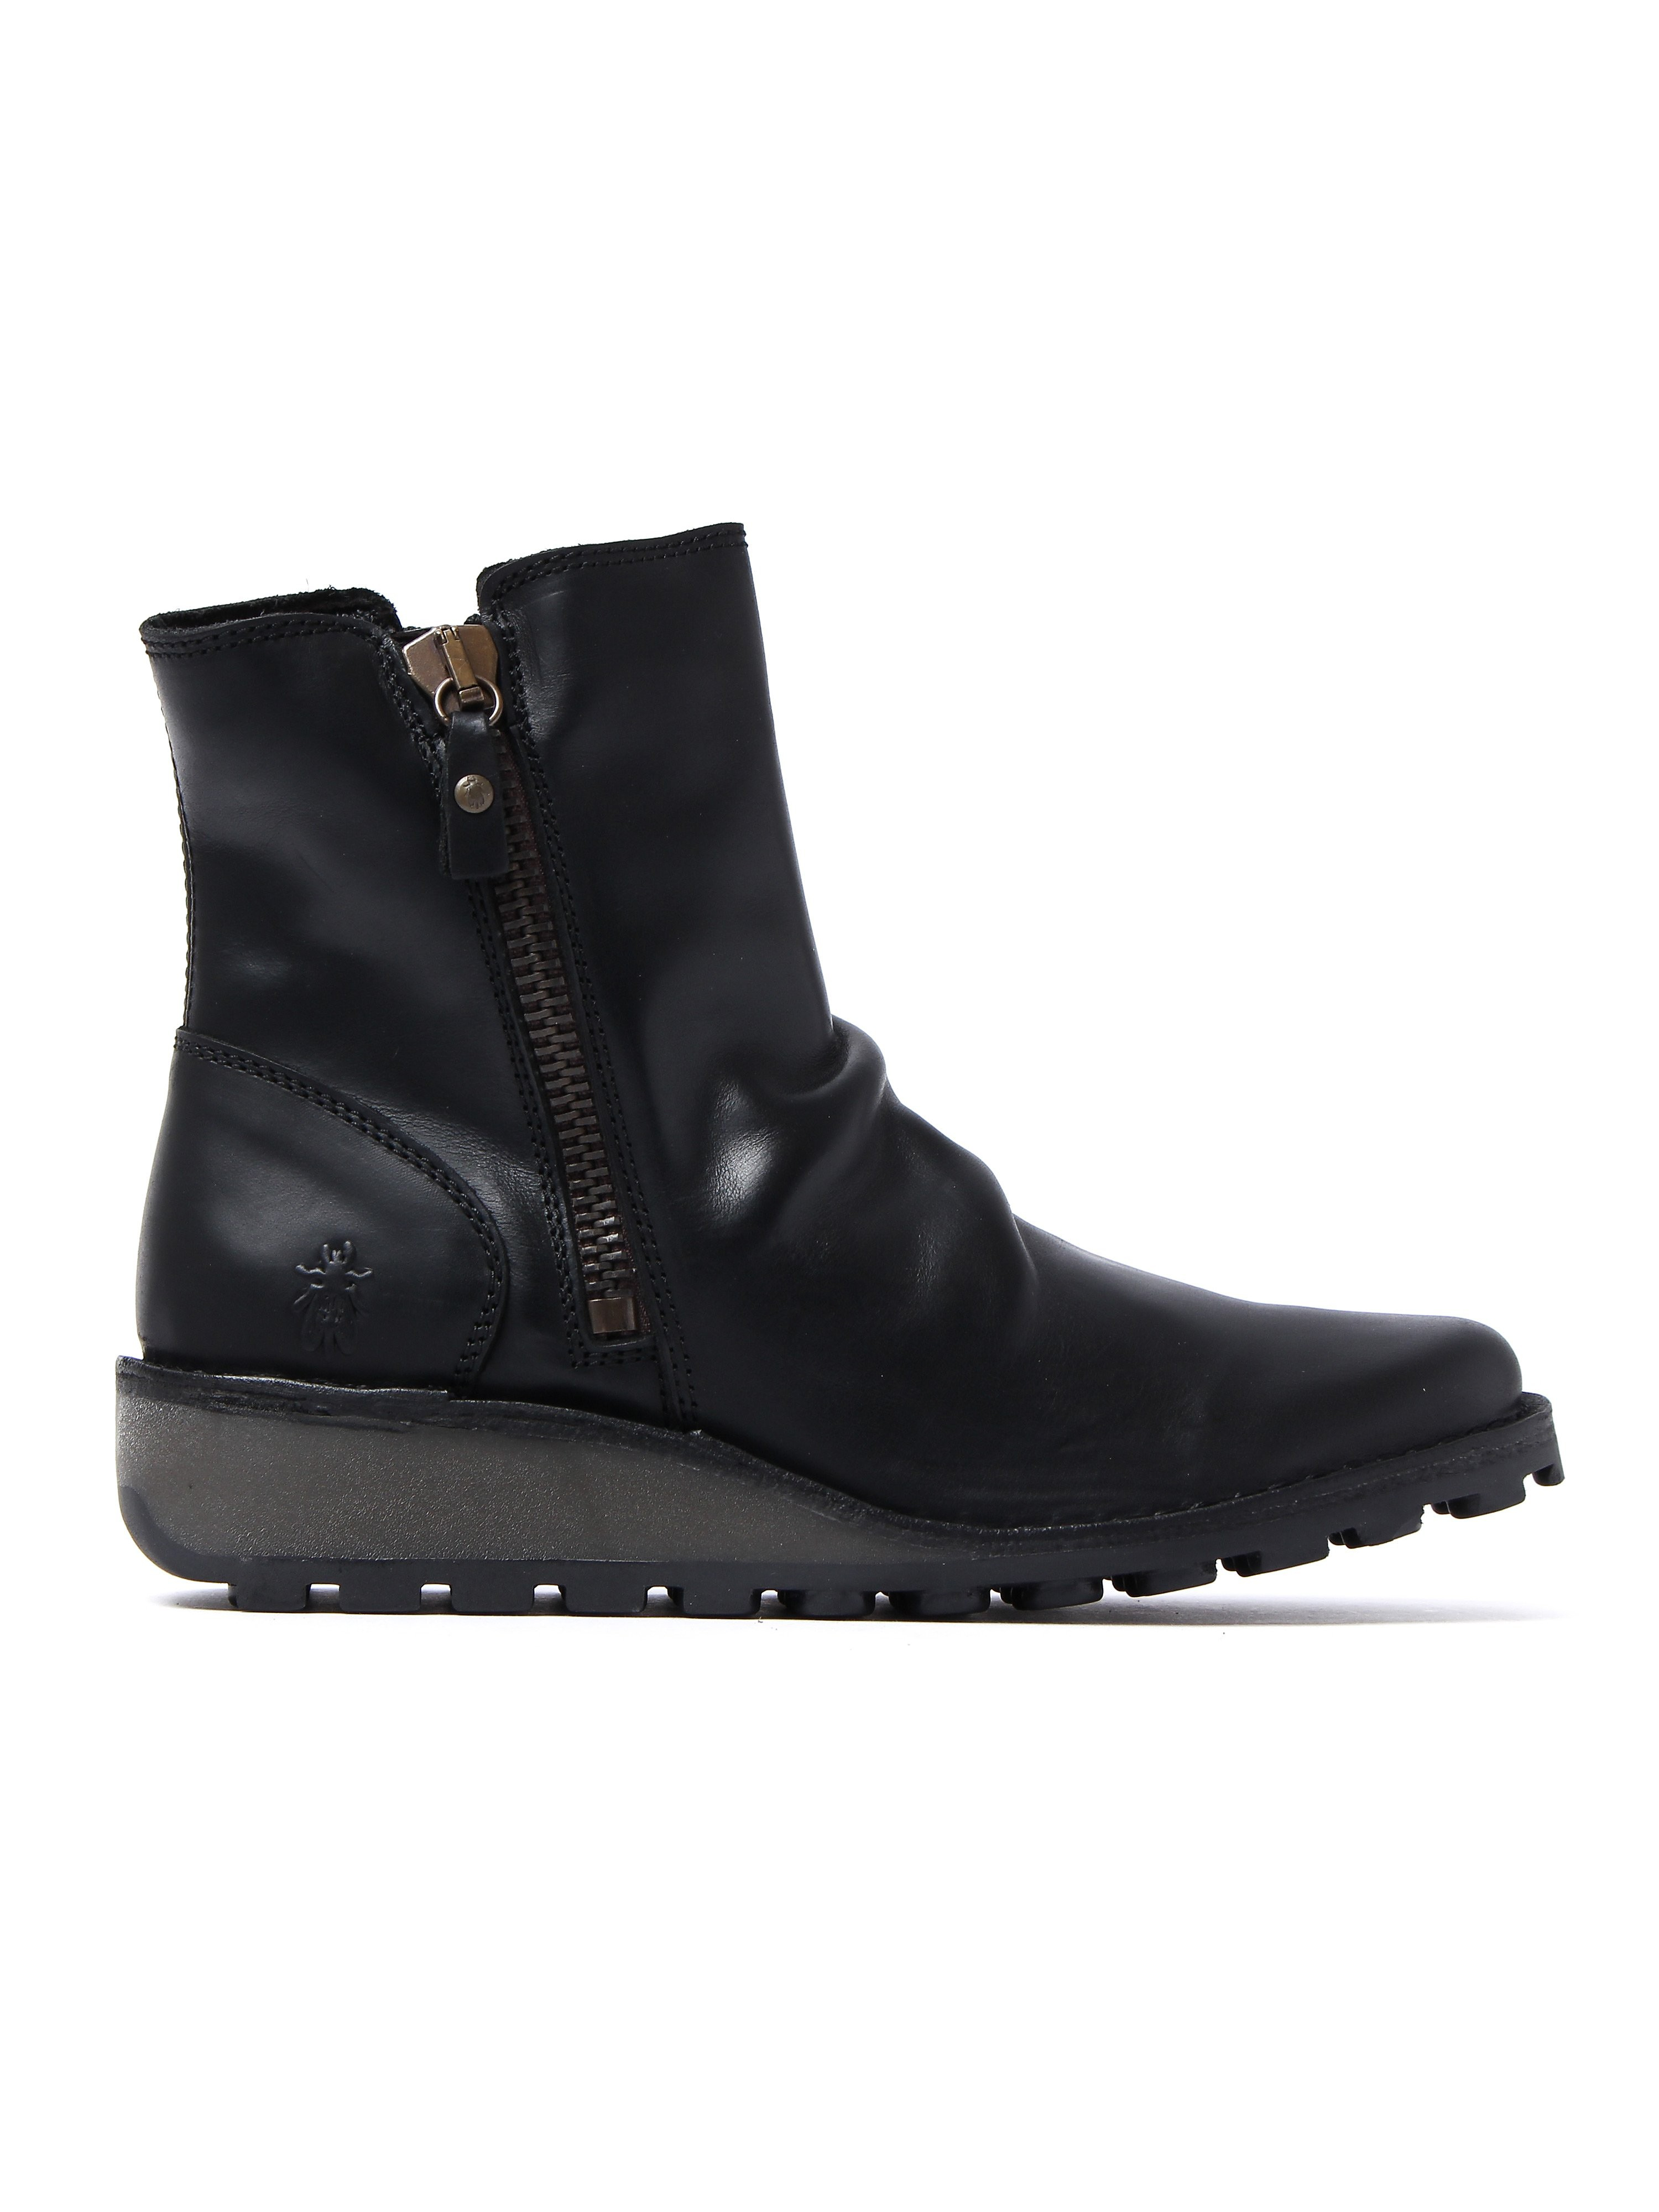 Fly London Women's Mong Boots – Black Leather